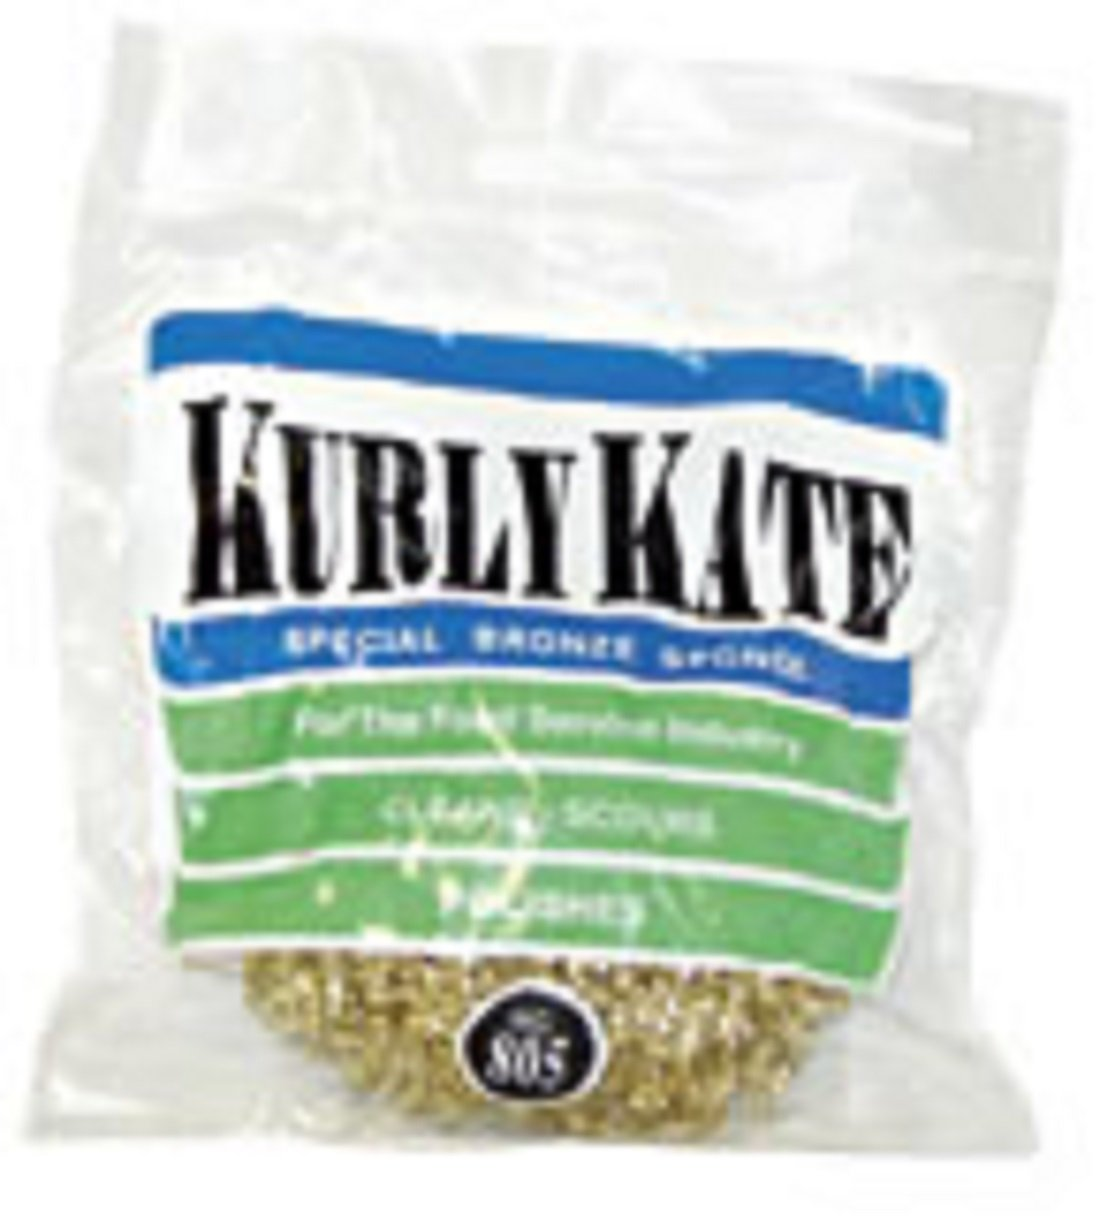 Kurly Kate Bronze Scrubber, 805, Product # 7380550, 50 Gram, 72 Pack by Disco